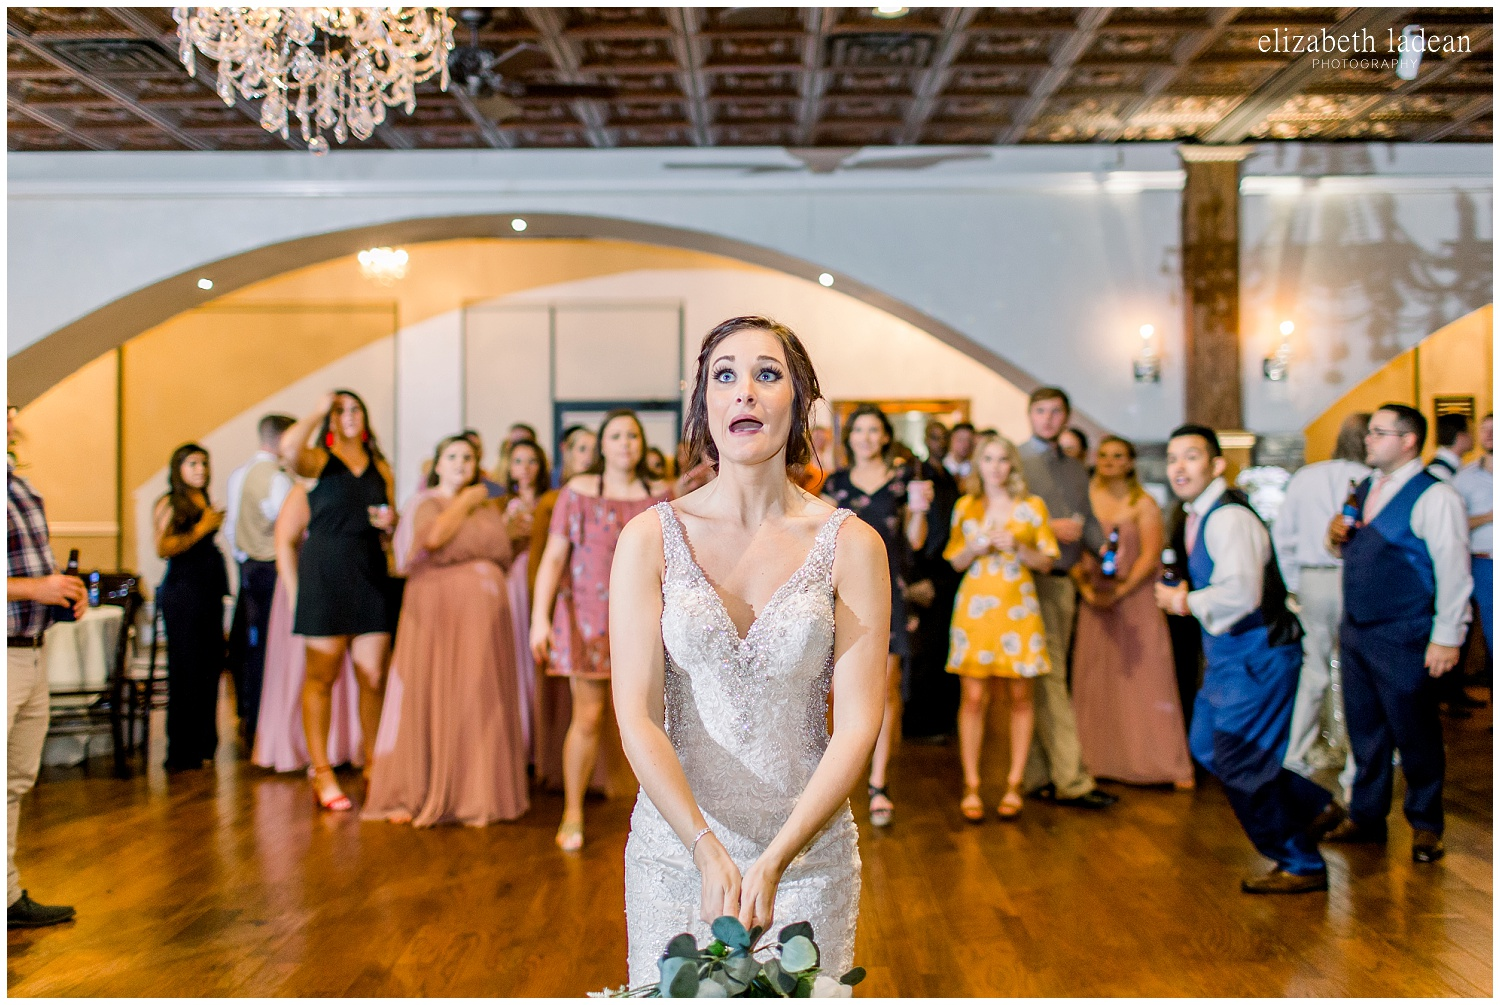 -behind-the-scenes-of-a-wedding-photographer-2018-elizabeth-ladean-photography-photo_3507.jpg